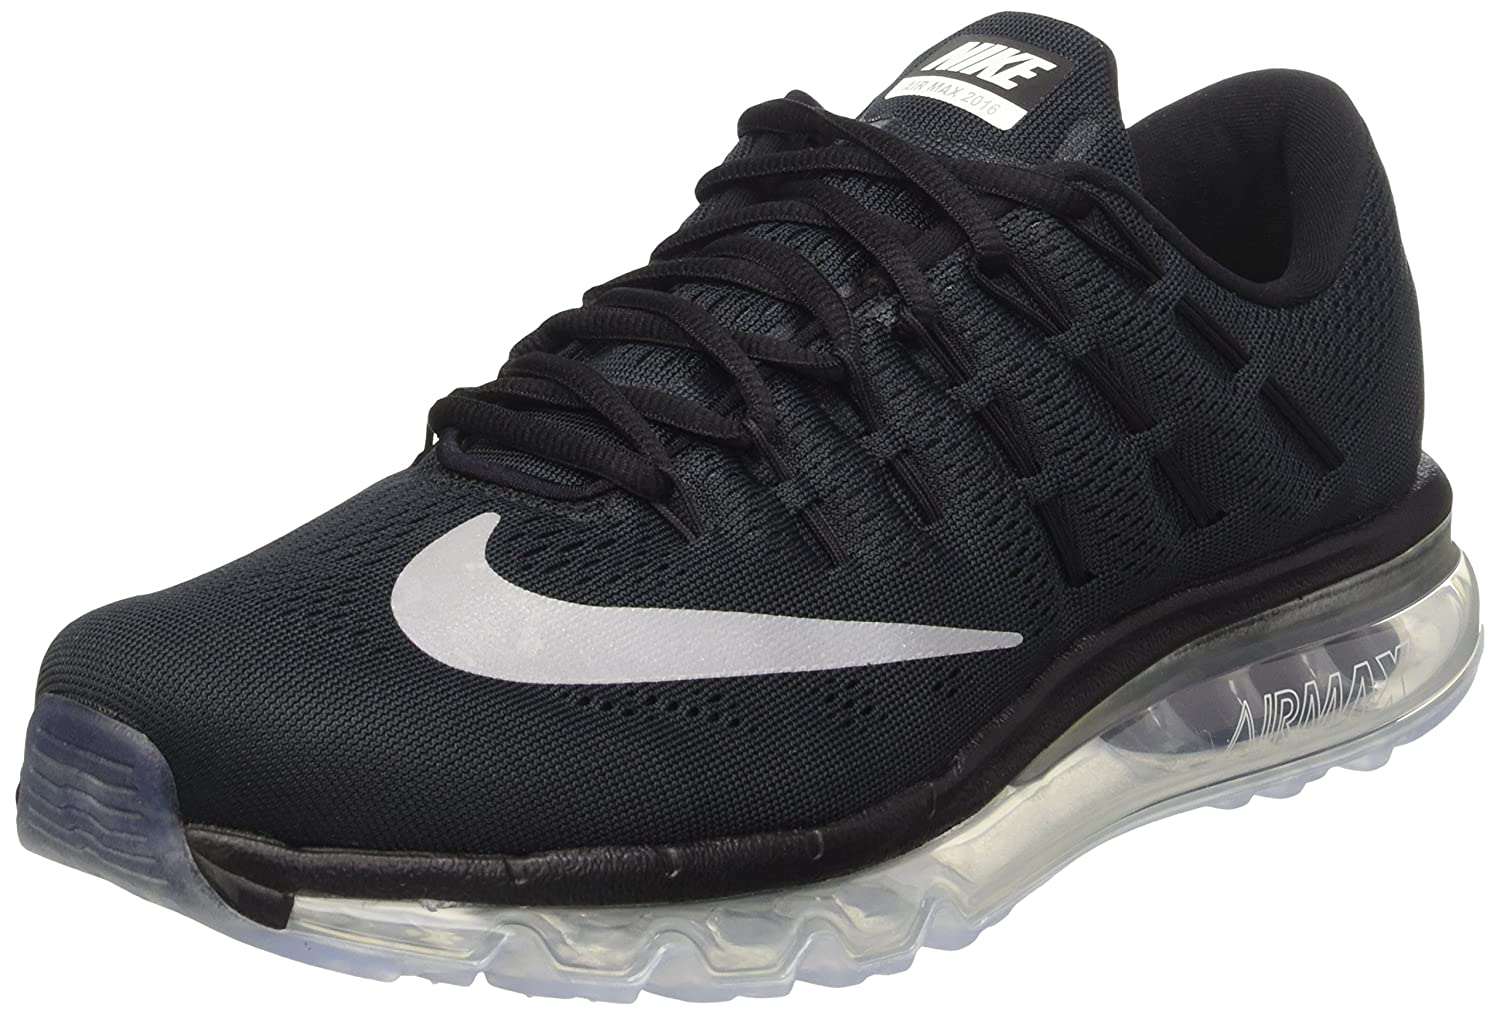 Nike Herren Air Max 2016 Low-Top, 44 EU  425 EU|Black / White / Dark Grey